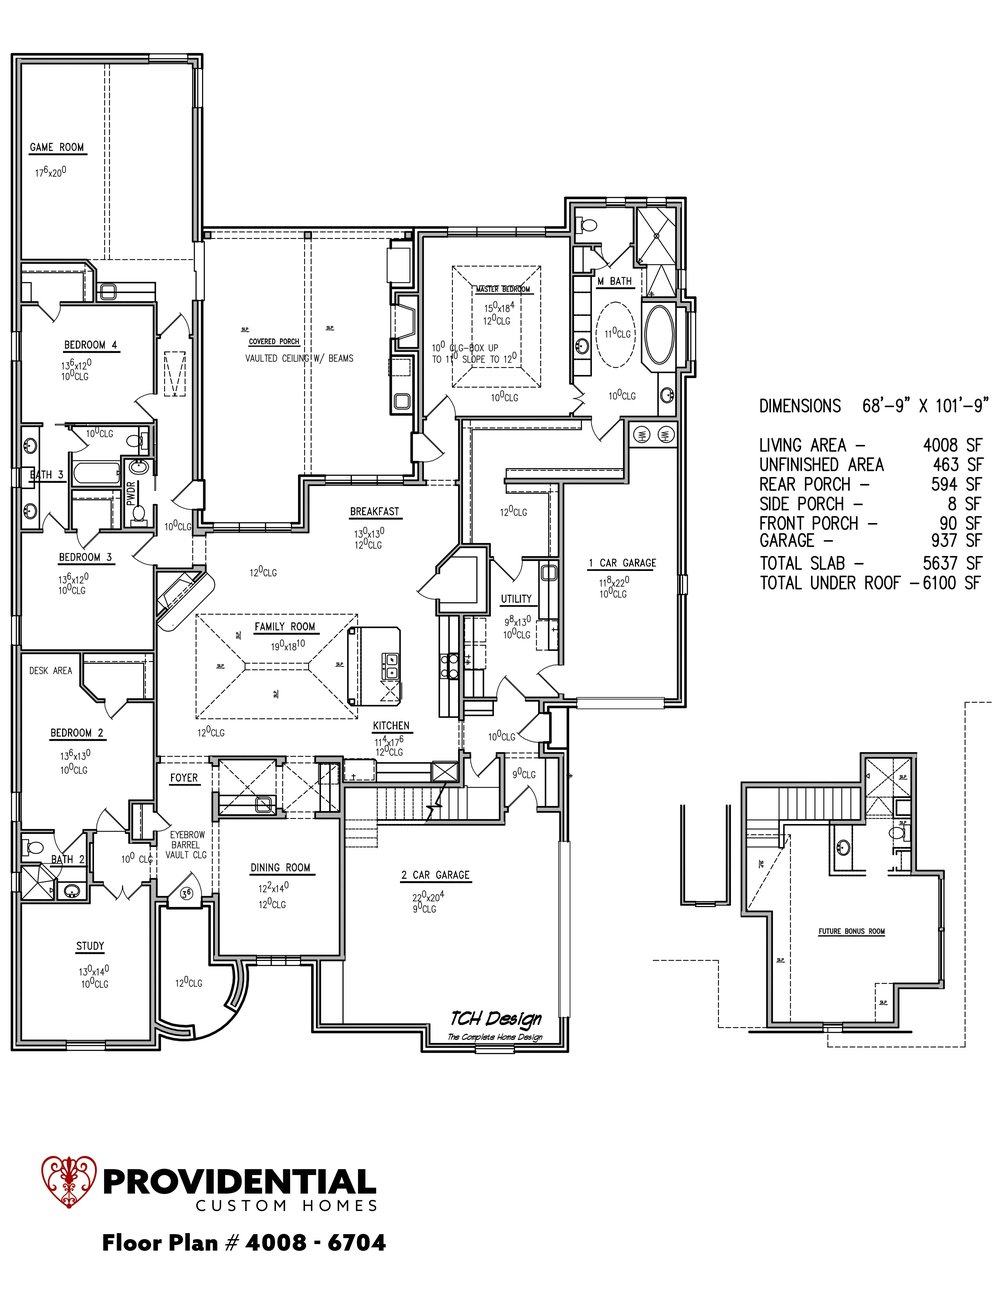 The FLOOR PLAN #4008 - 6704.jpg